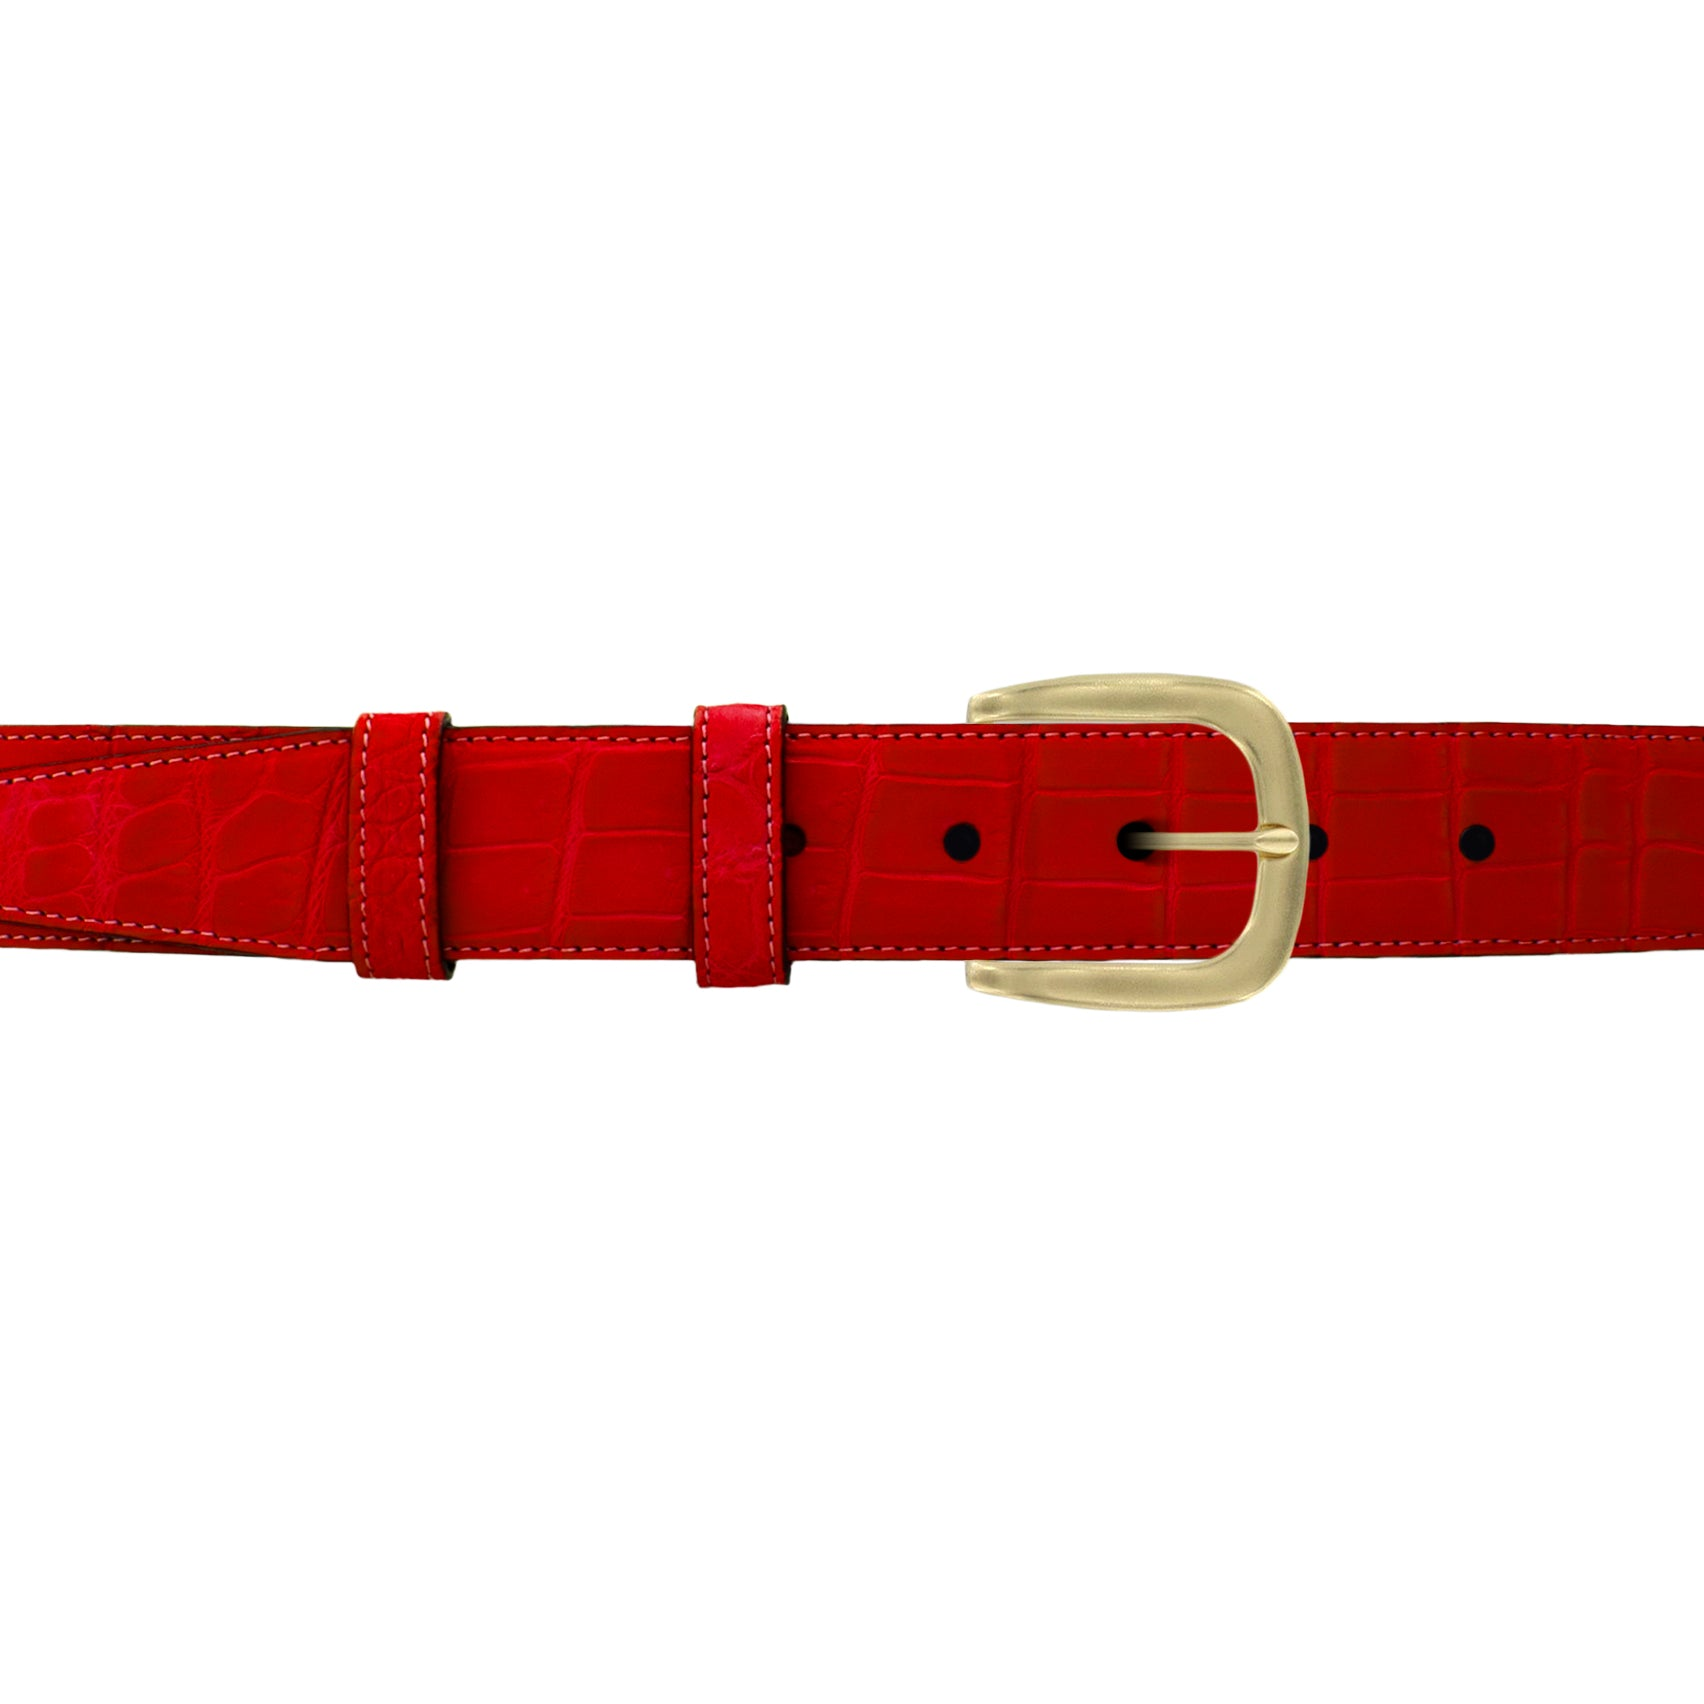 "1 1/4"" Candy Seasonal Belt with Oxford Cocktail Buckle in Brass"